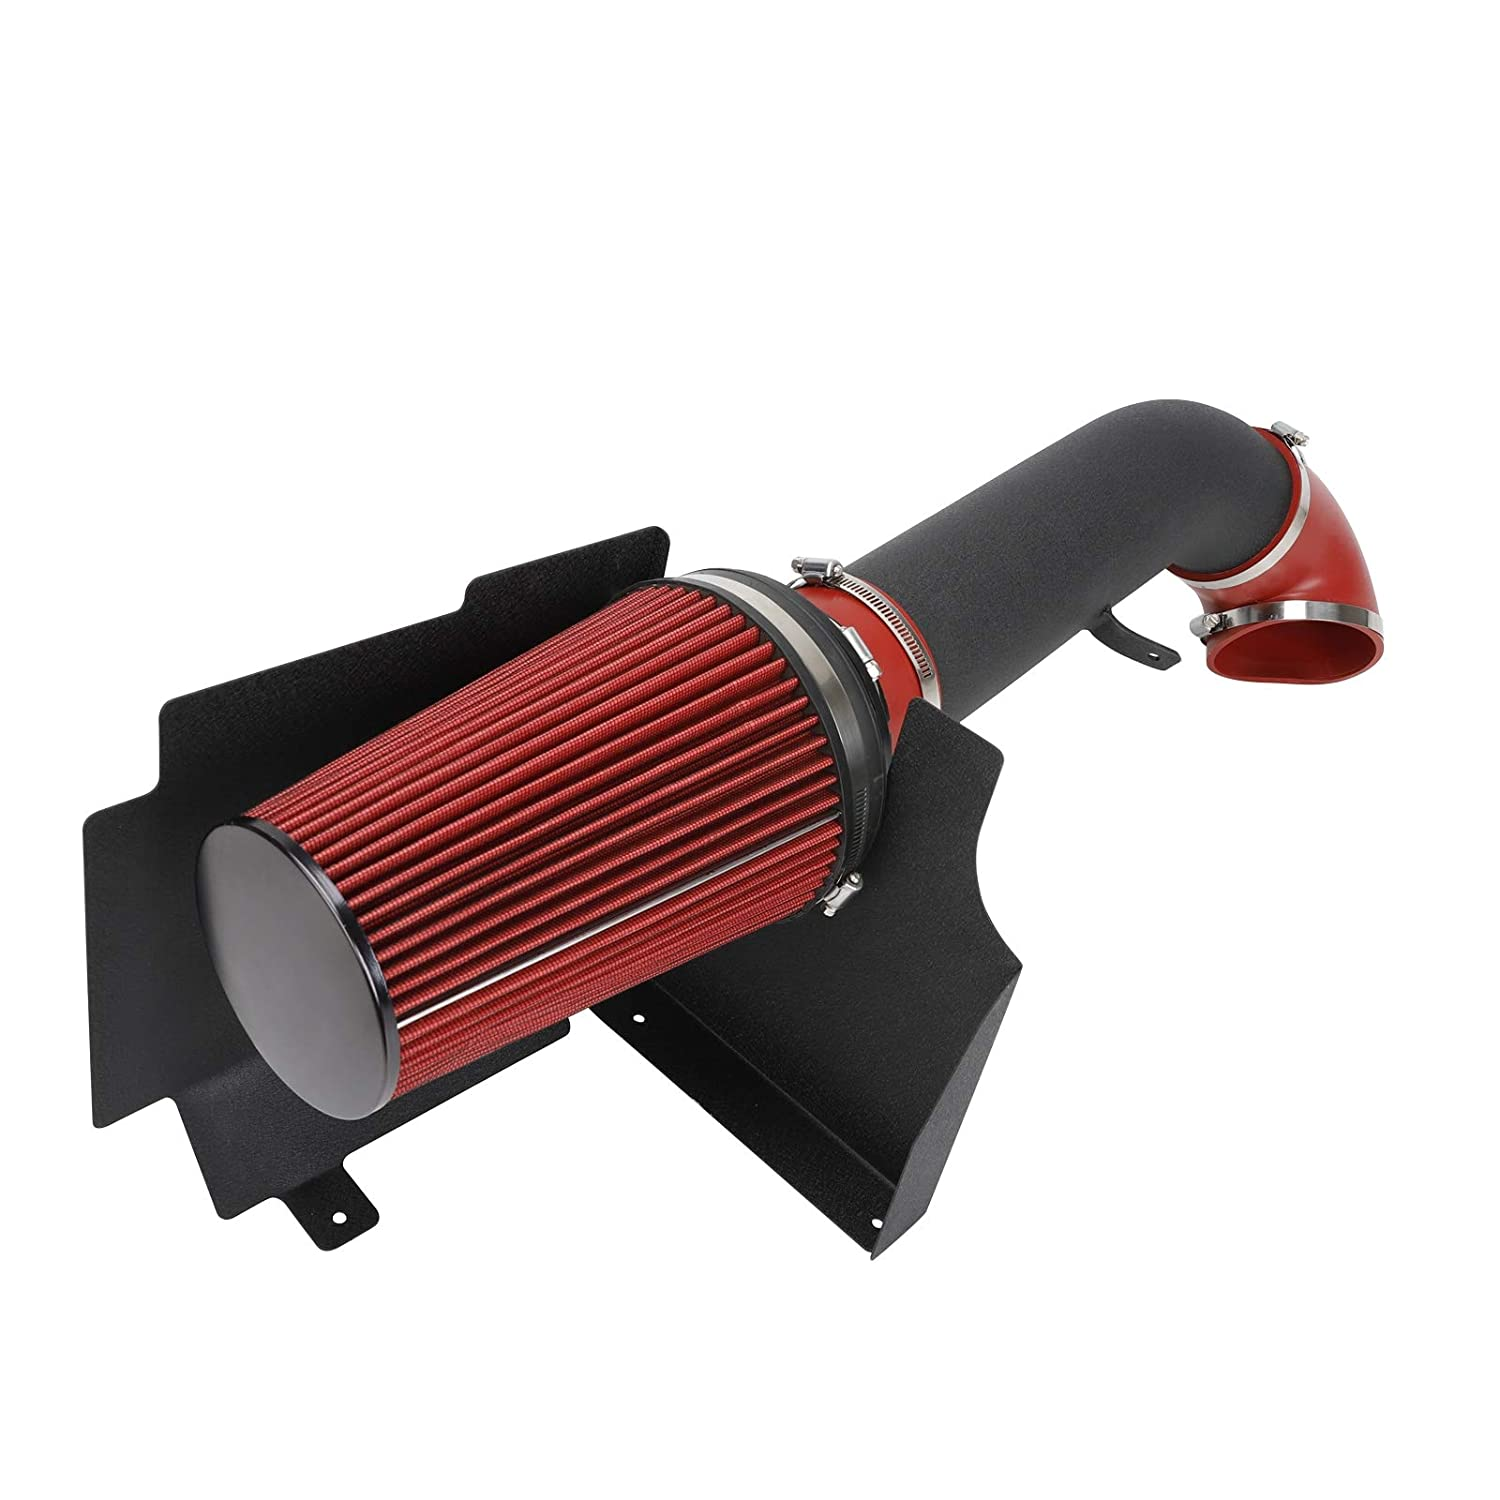 Superfastracing 4 Cold Air Intake System Red Silverado 1500//2500//3500 Heat Shield For 99-06 GMC//Chevy V8 4.8L//5.3L//6.0L